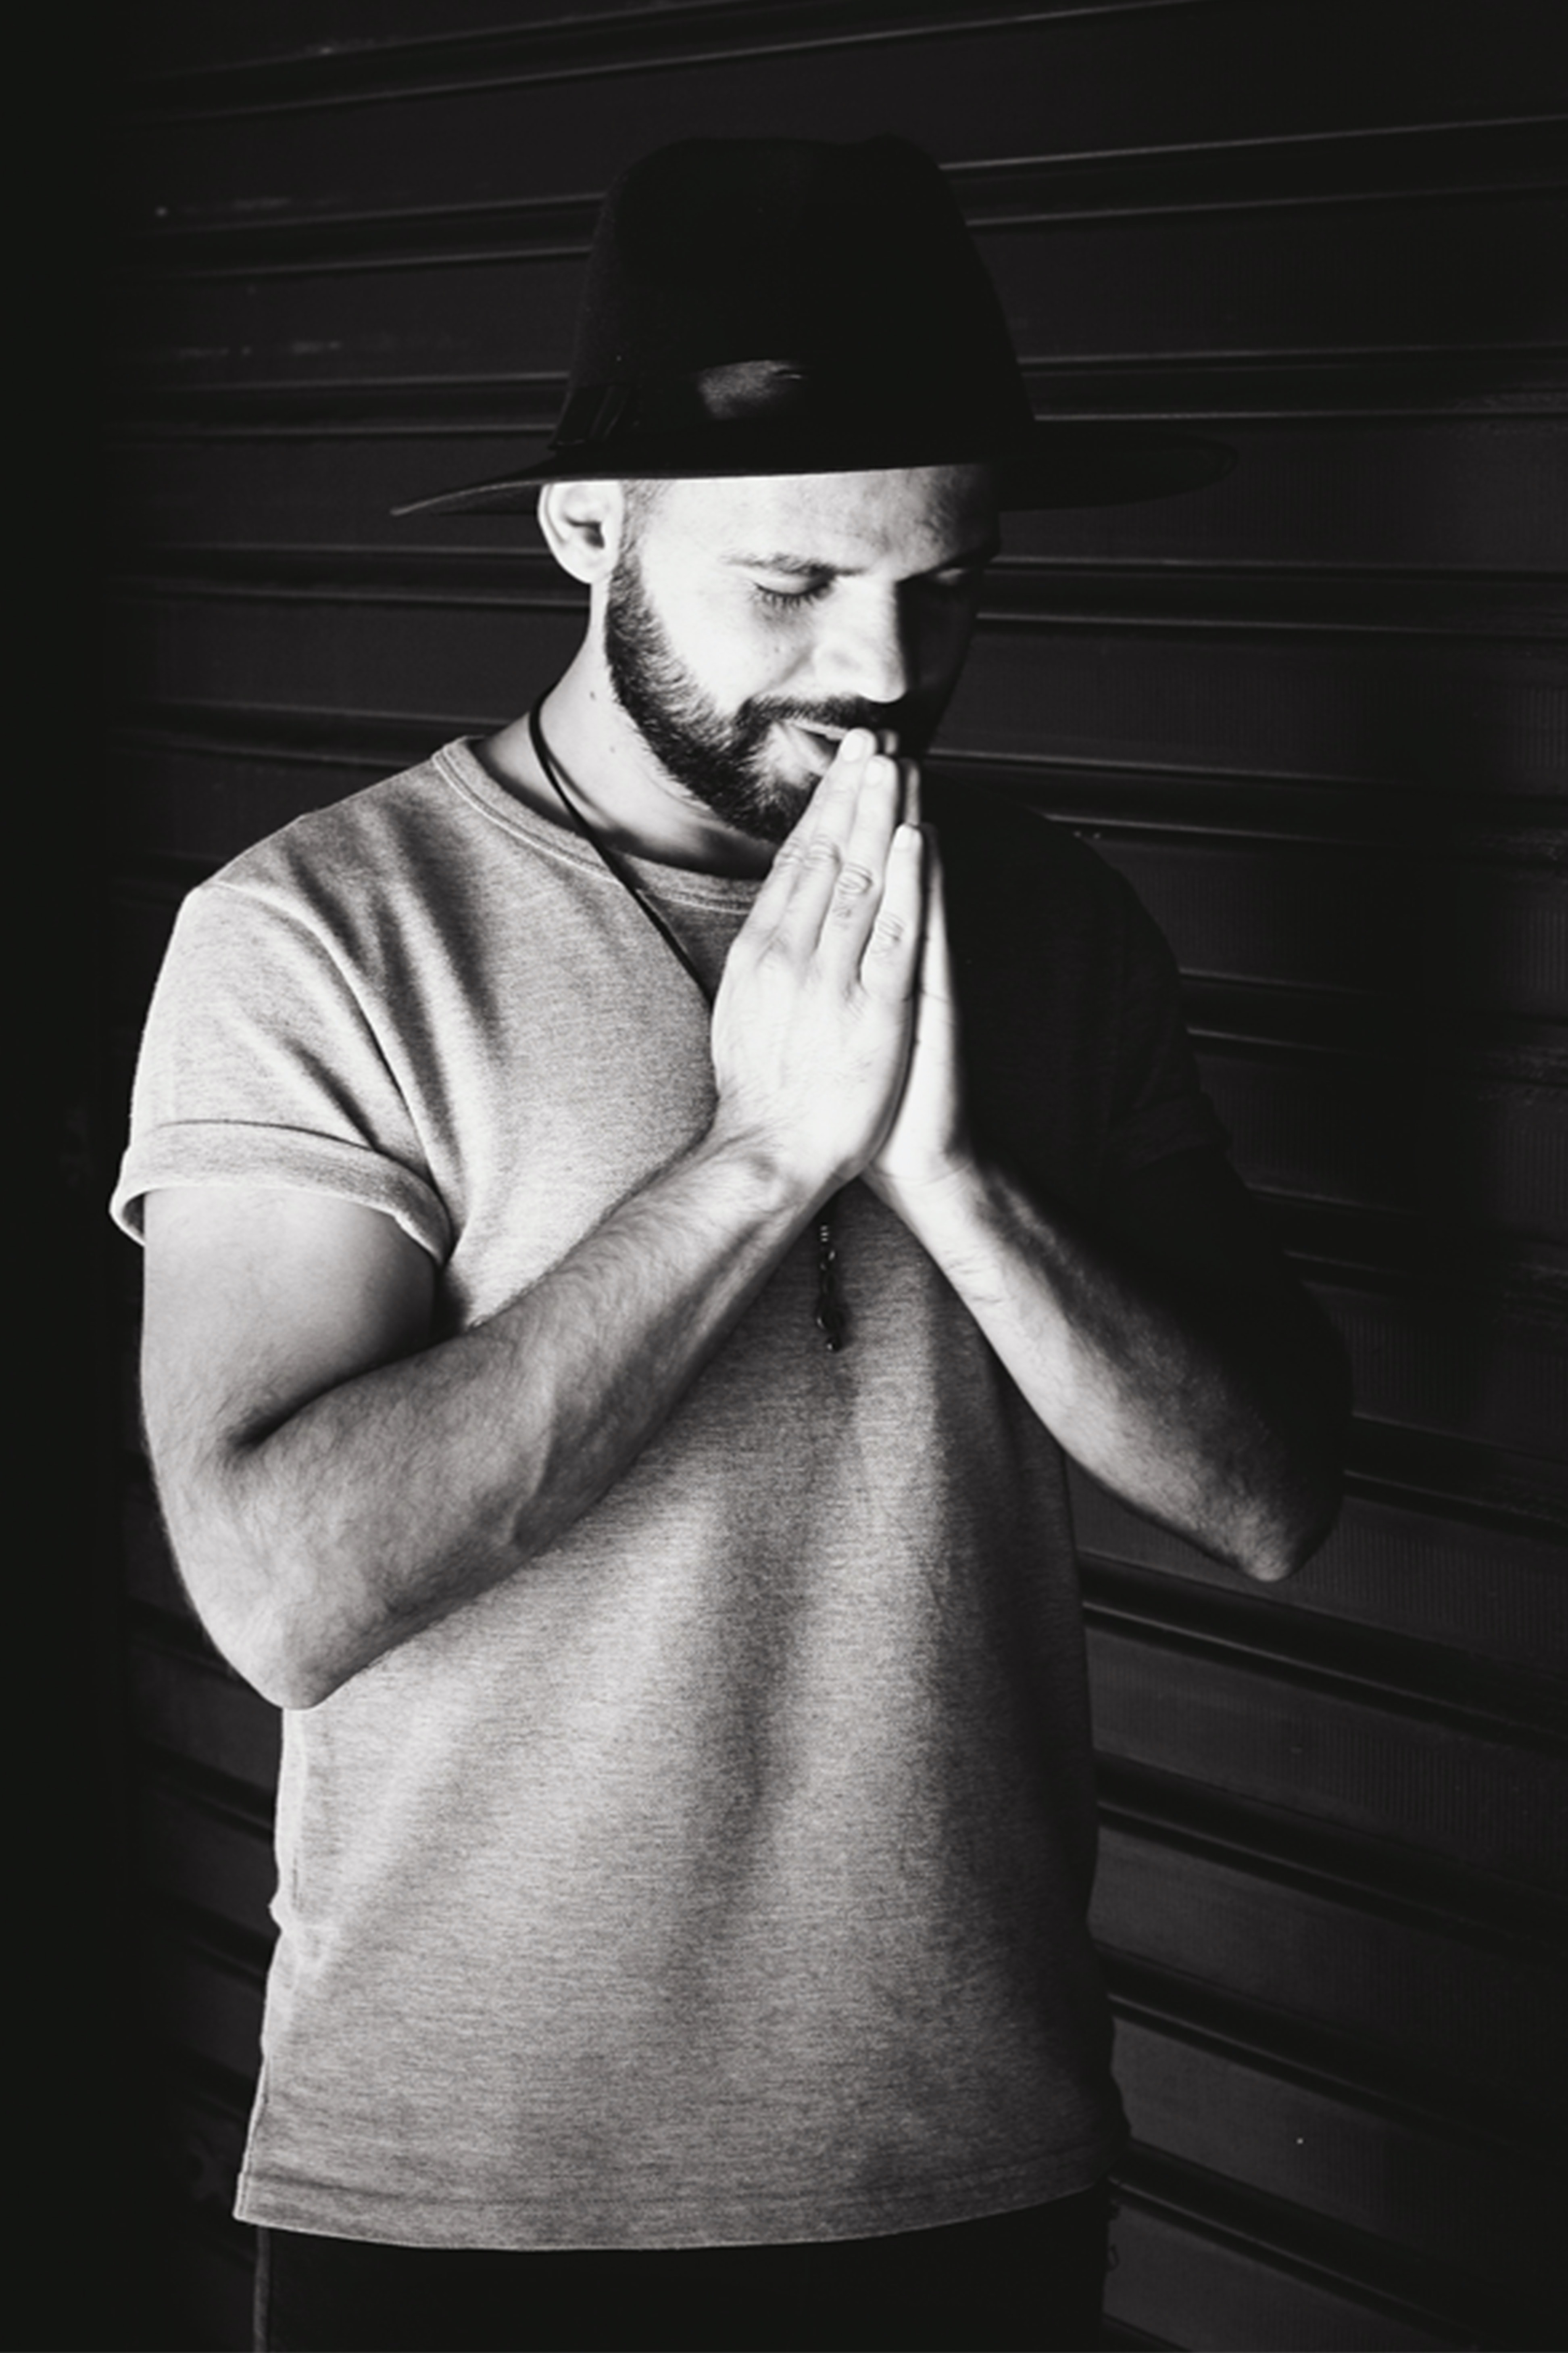 grayscale photography of a man praying